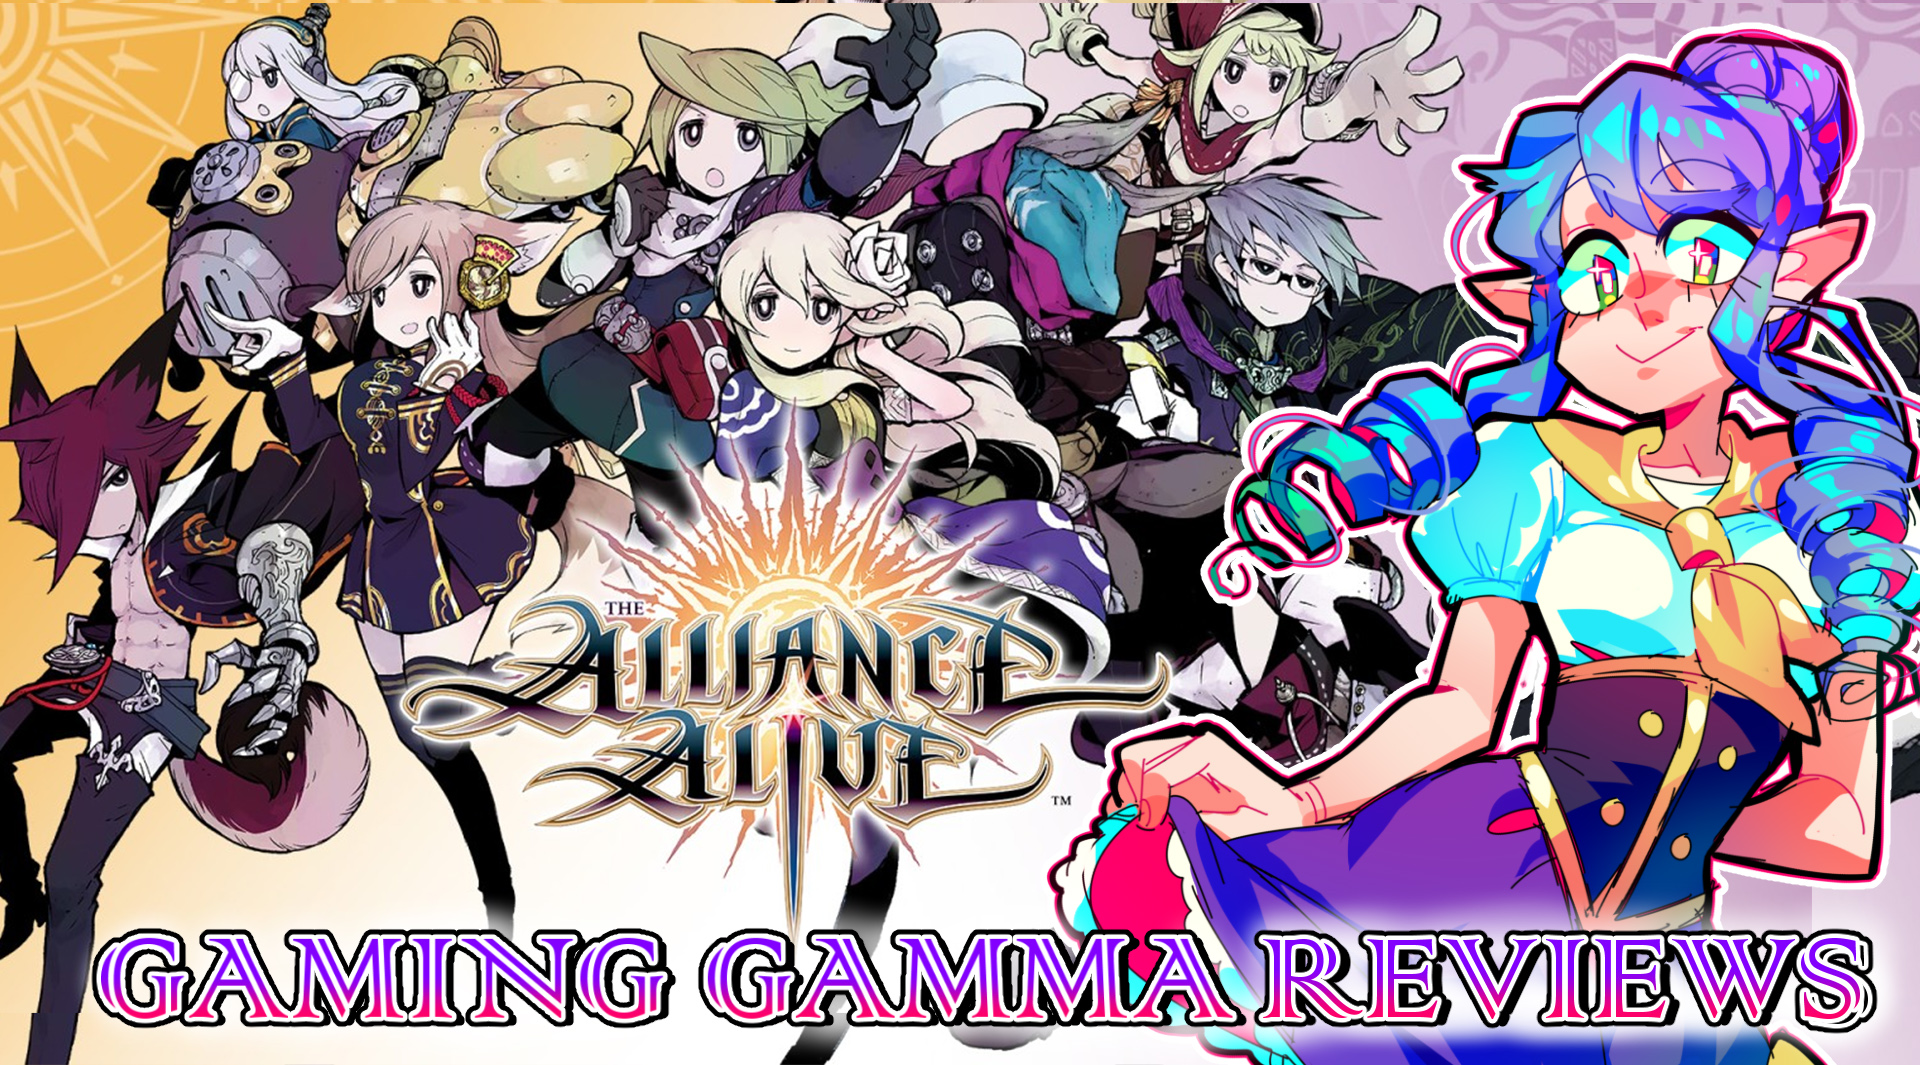 The Alliance Alive Review-The 3DS is Still Alive   The Gaming Gamma